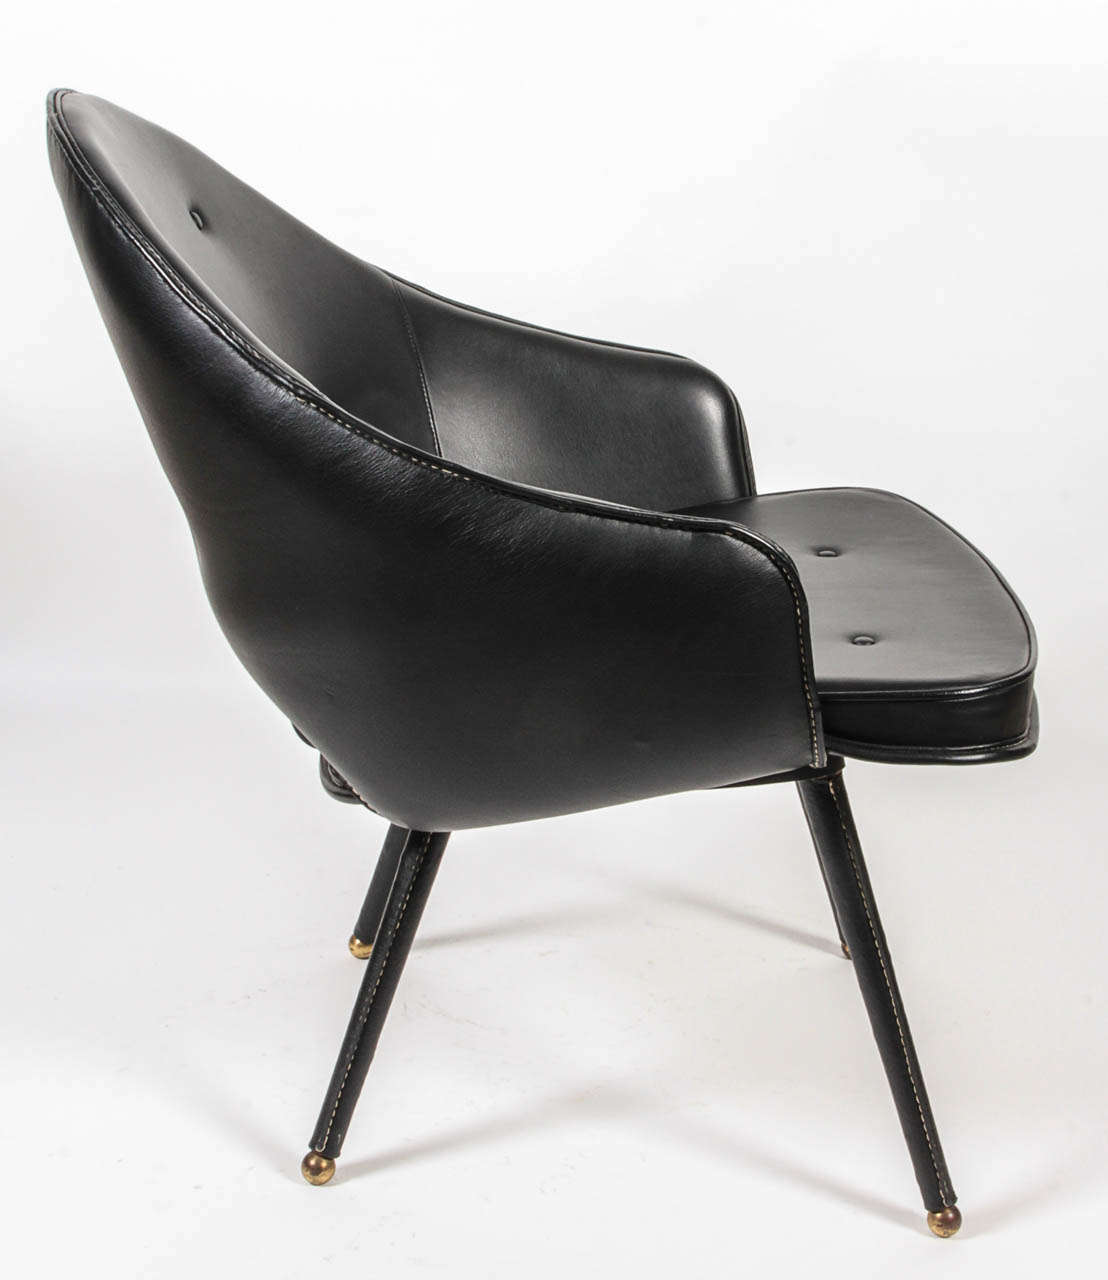 French 1950s Stitched Leather Armchair by Jacques Adnet For Sale